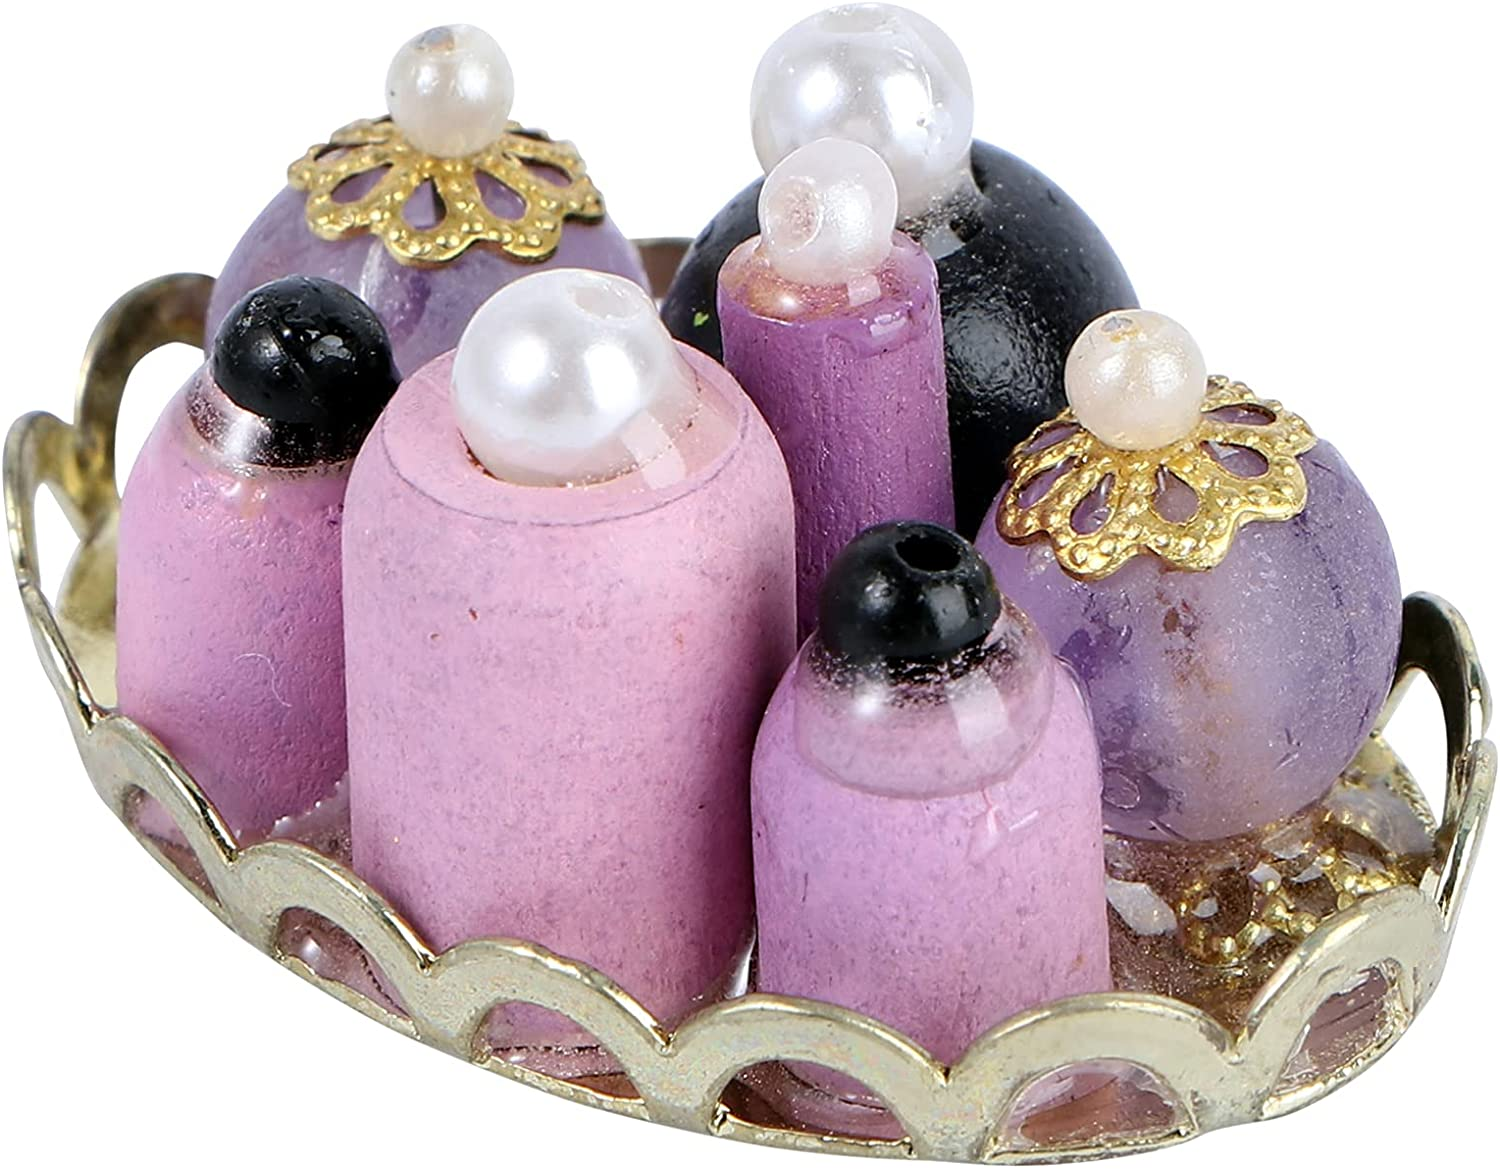 Ranking integrated 1st place NUOBESTY 1: Spasm price 12 Miniature Dollhouse Sets Accessories Mini Perfume